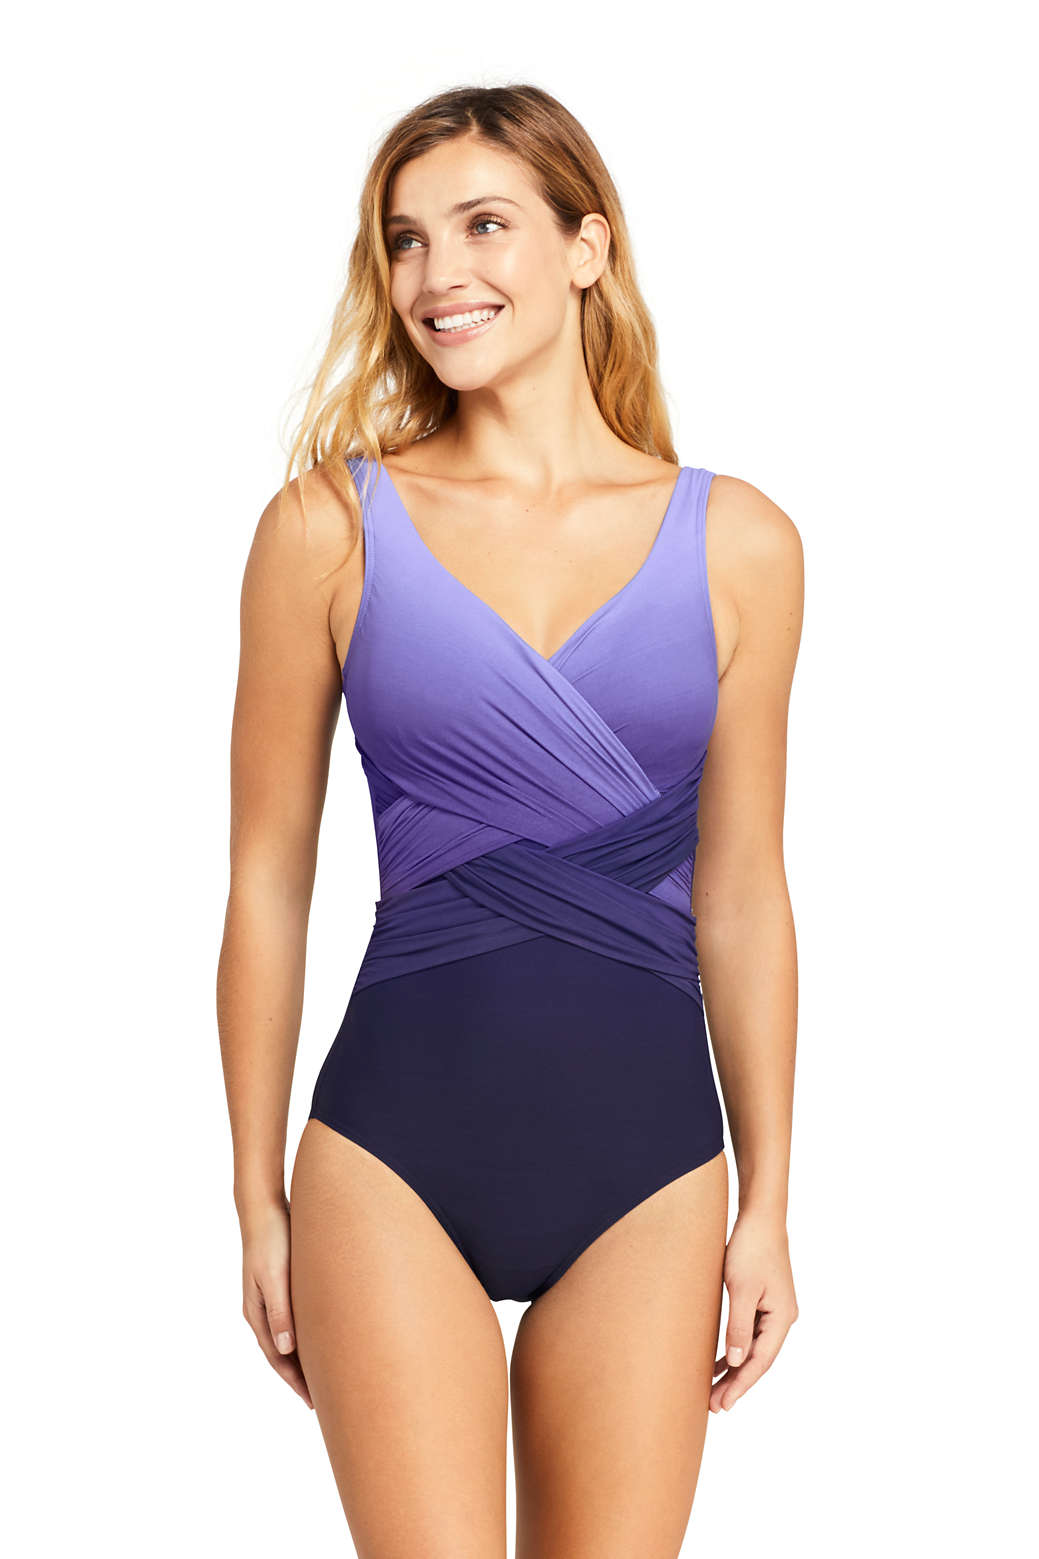 a76d6900c3f Women s Slender Wrap One Piece Swimsuit with Tummy Control Print from  Lands  End